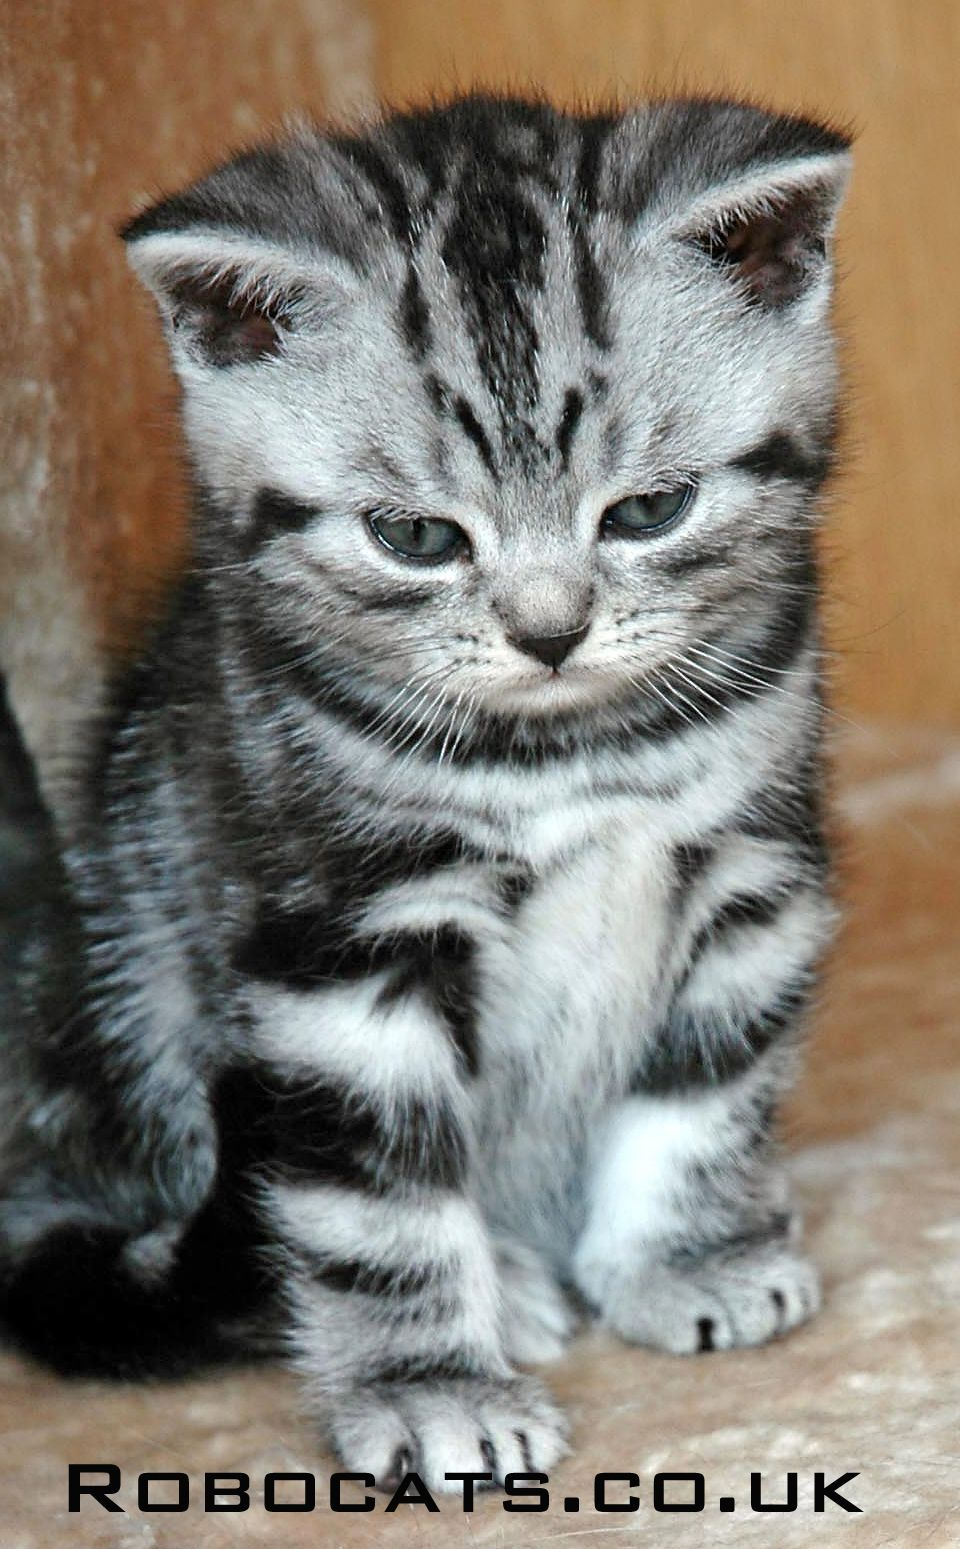 When It Comes To Choosing That Perfect Pet Look No Further Than A British Shorthair Silver Tabby Kitten G In 2020 Silver Tabby Cat Silver Tabby Kitten Beautiful Cats